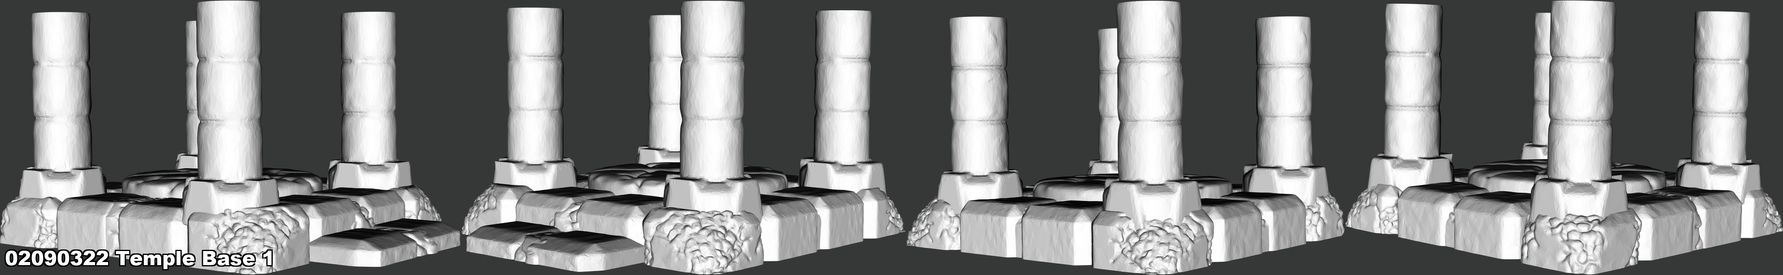 02090322 Temple Base 1.png